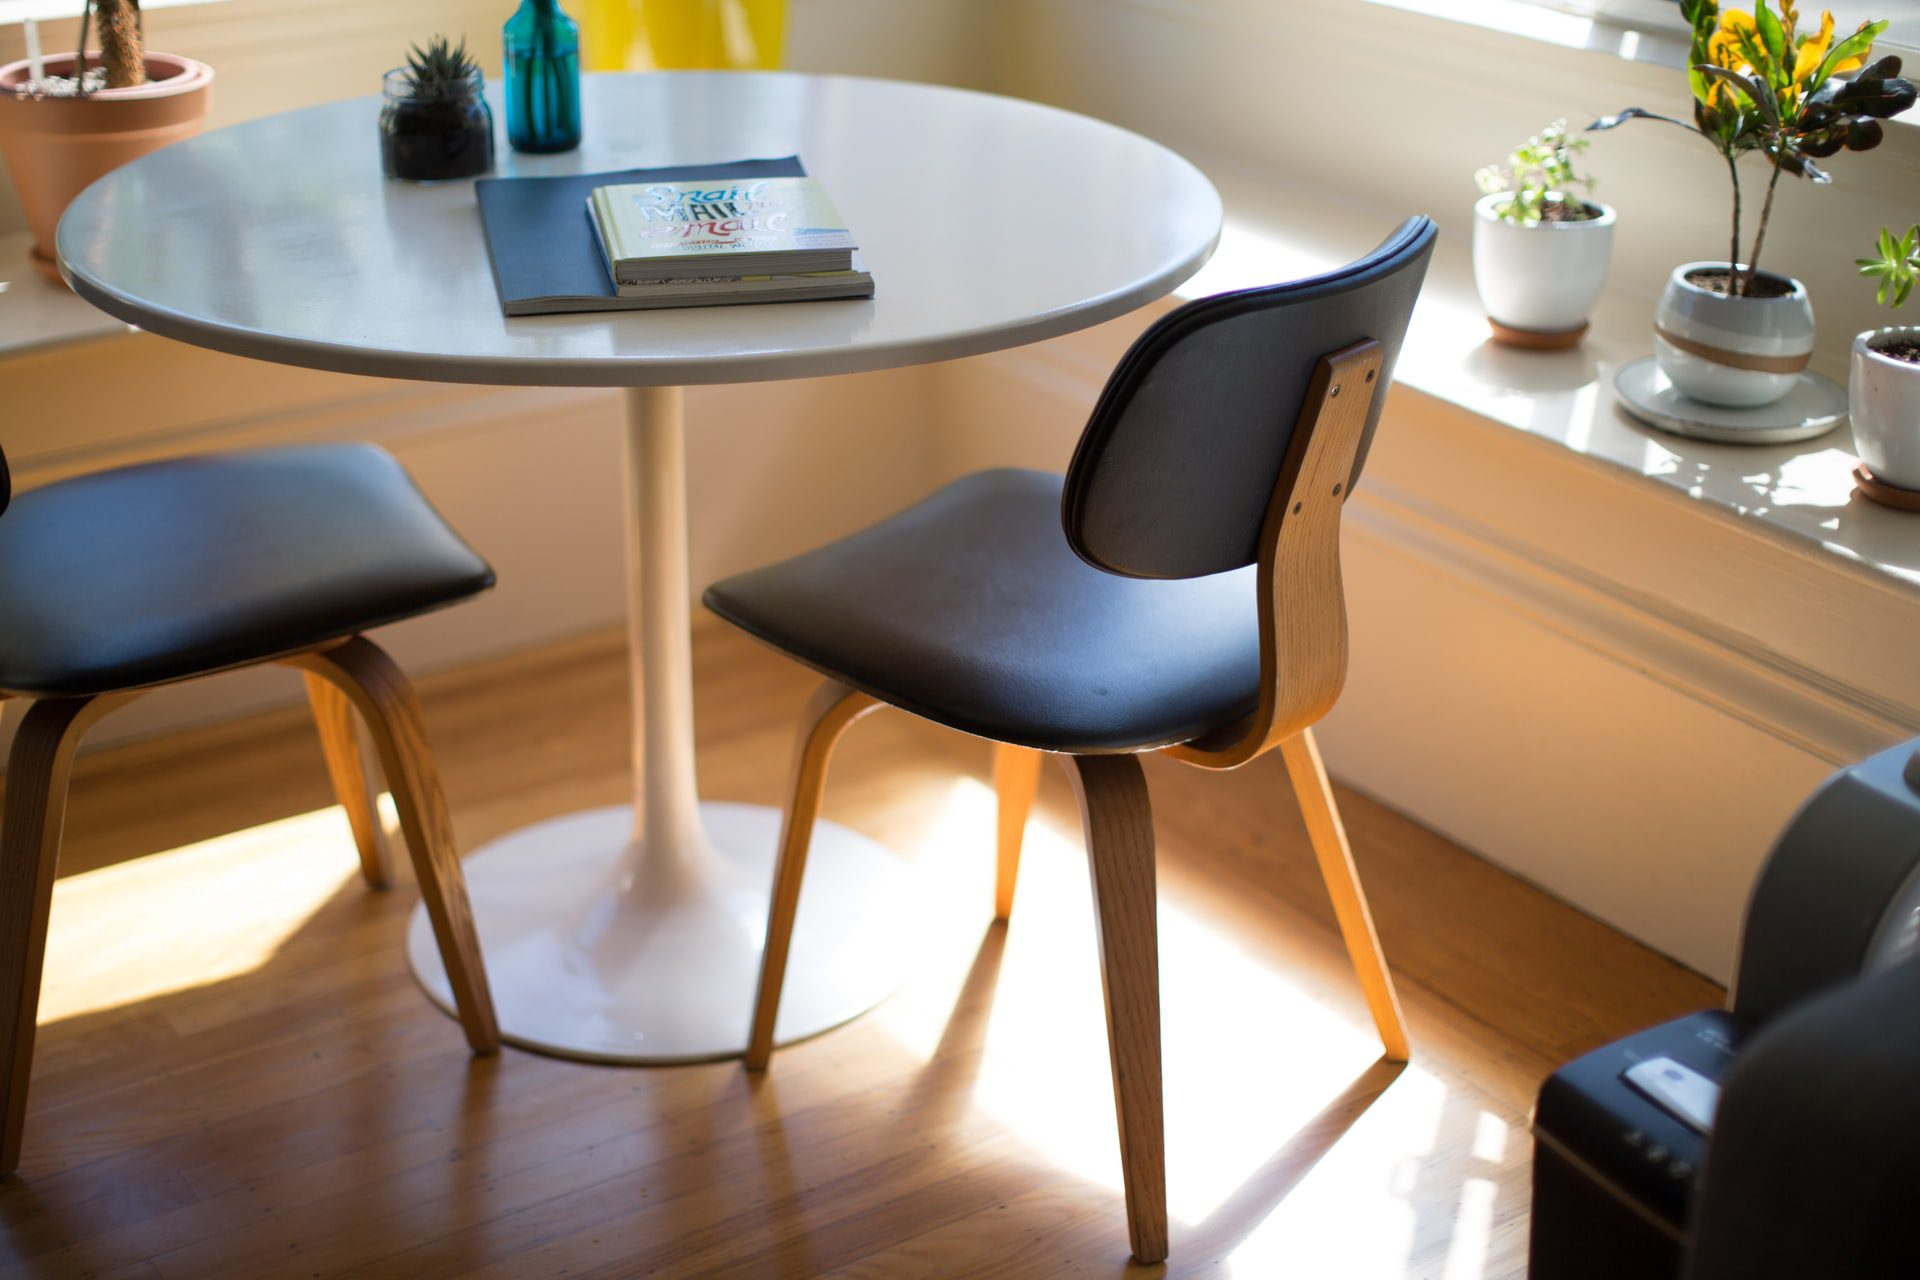 A popular dining table style: The tulip table and its uniqueness